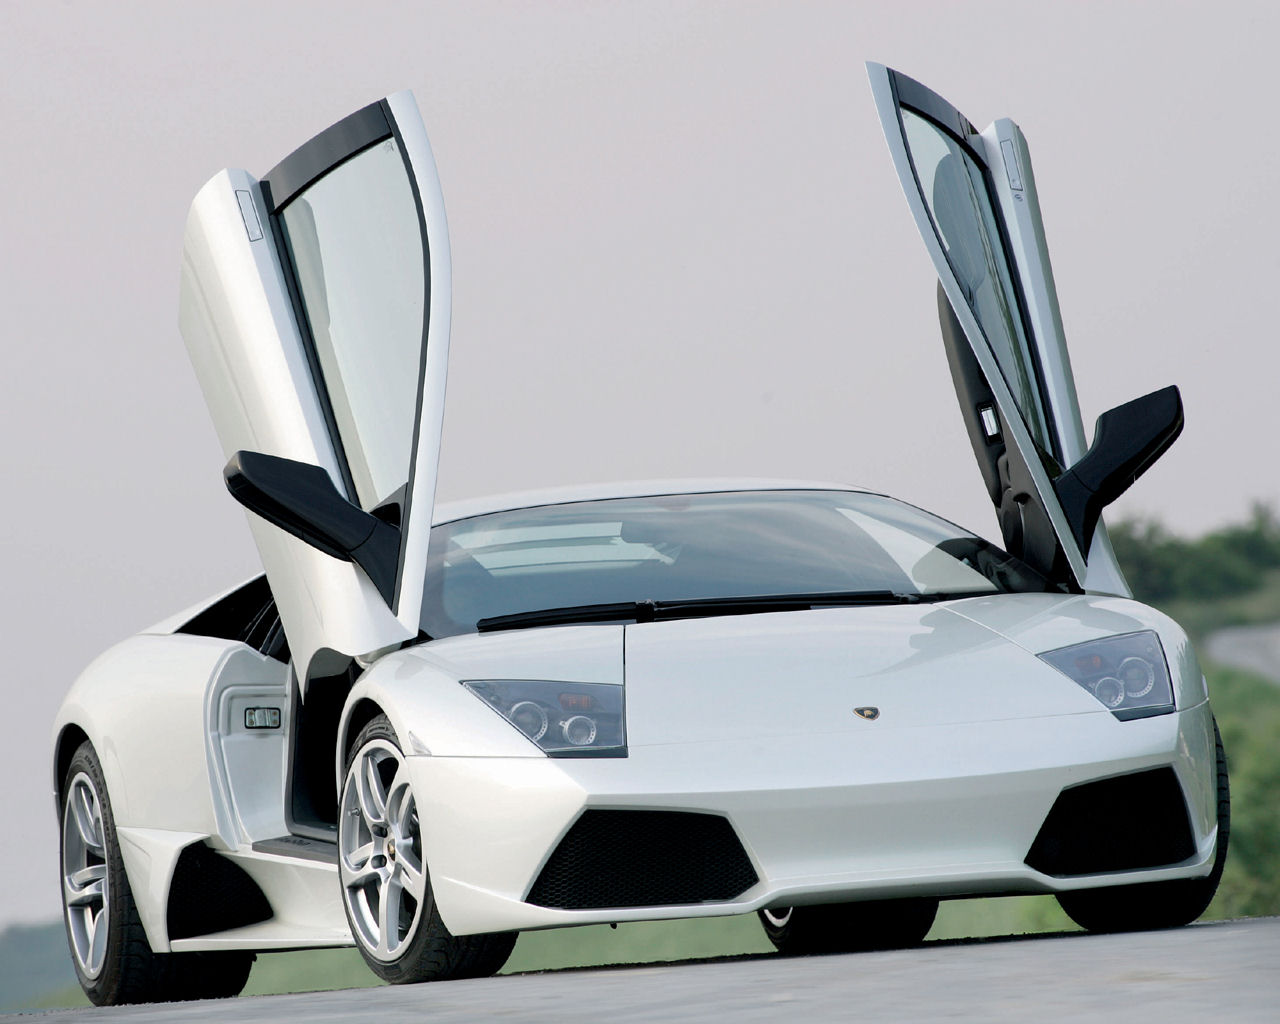 Lamborghini+murcielago+lp640+roadster+wallpaper